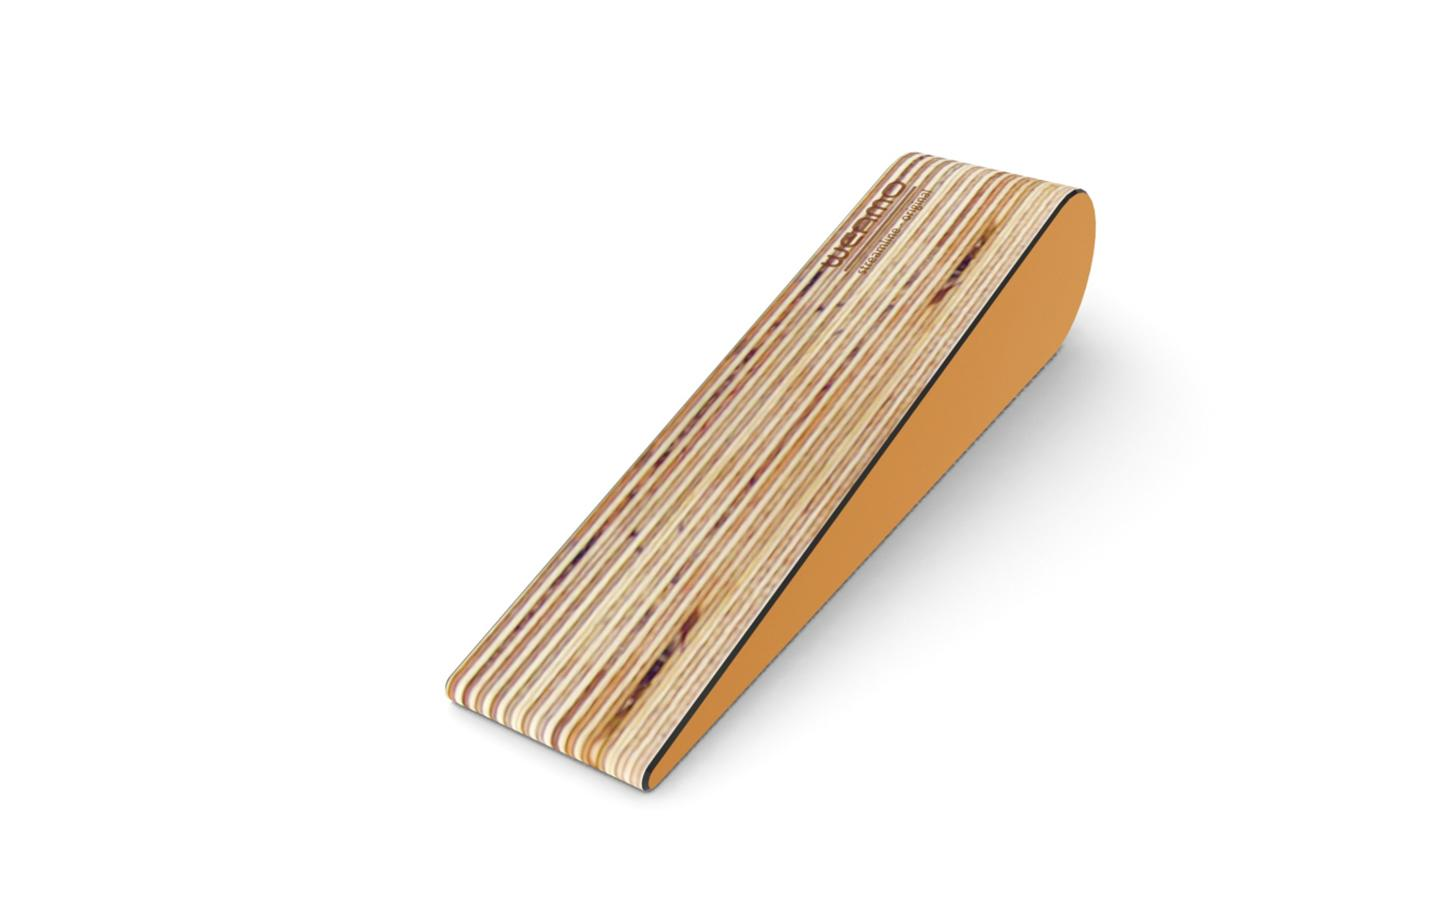 Streamline Original Doorstop - Ginger Snap Orange